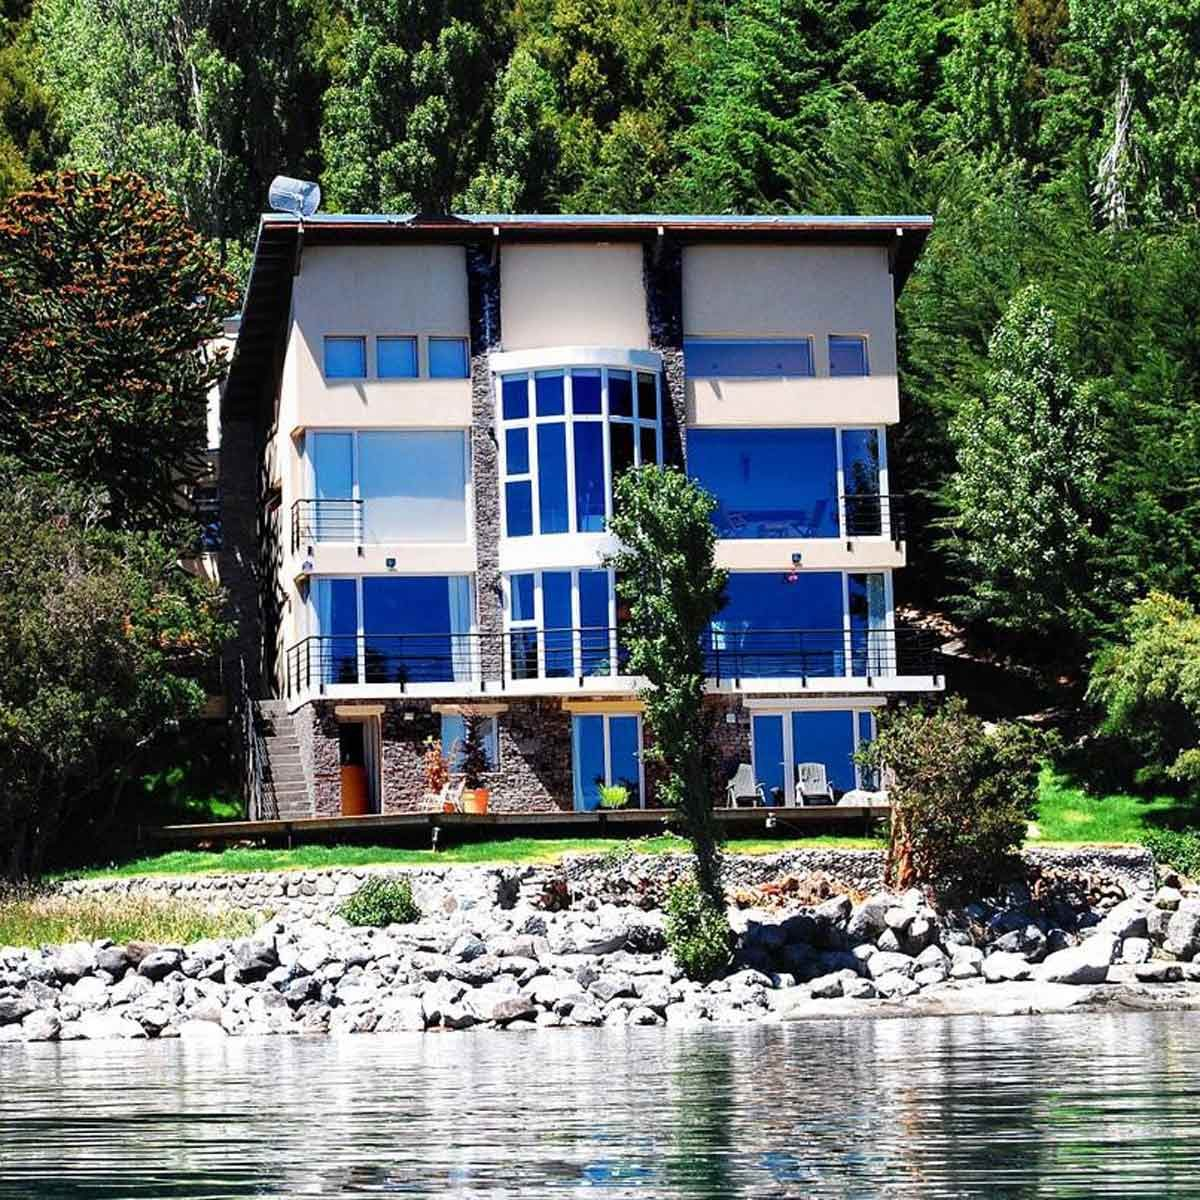 three-story mansion on the water in Argentina